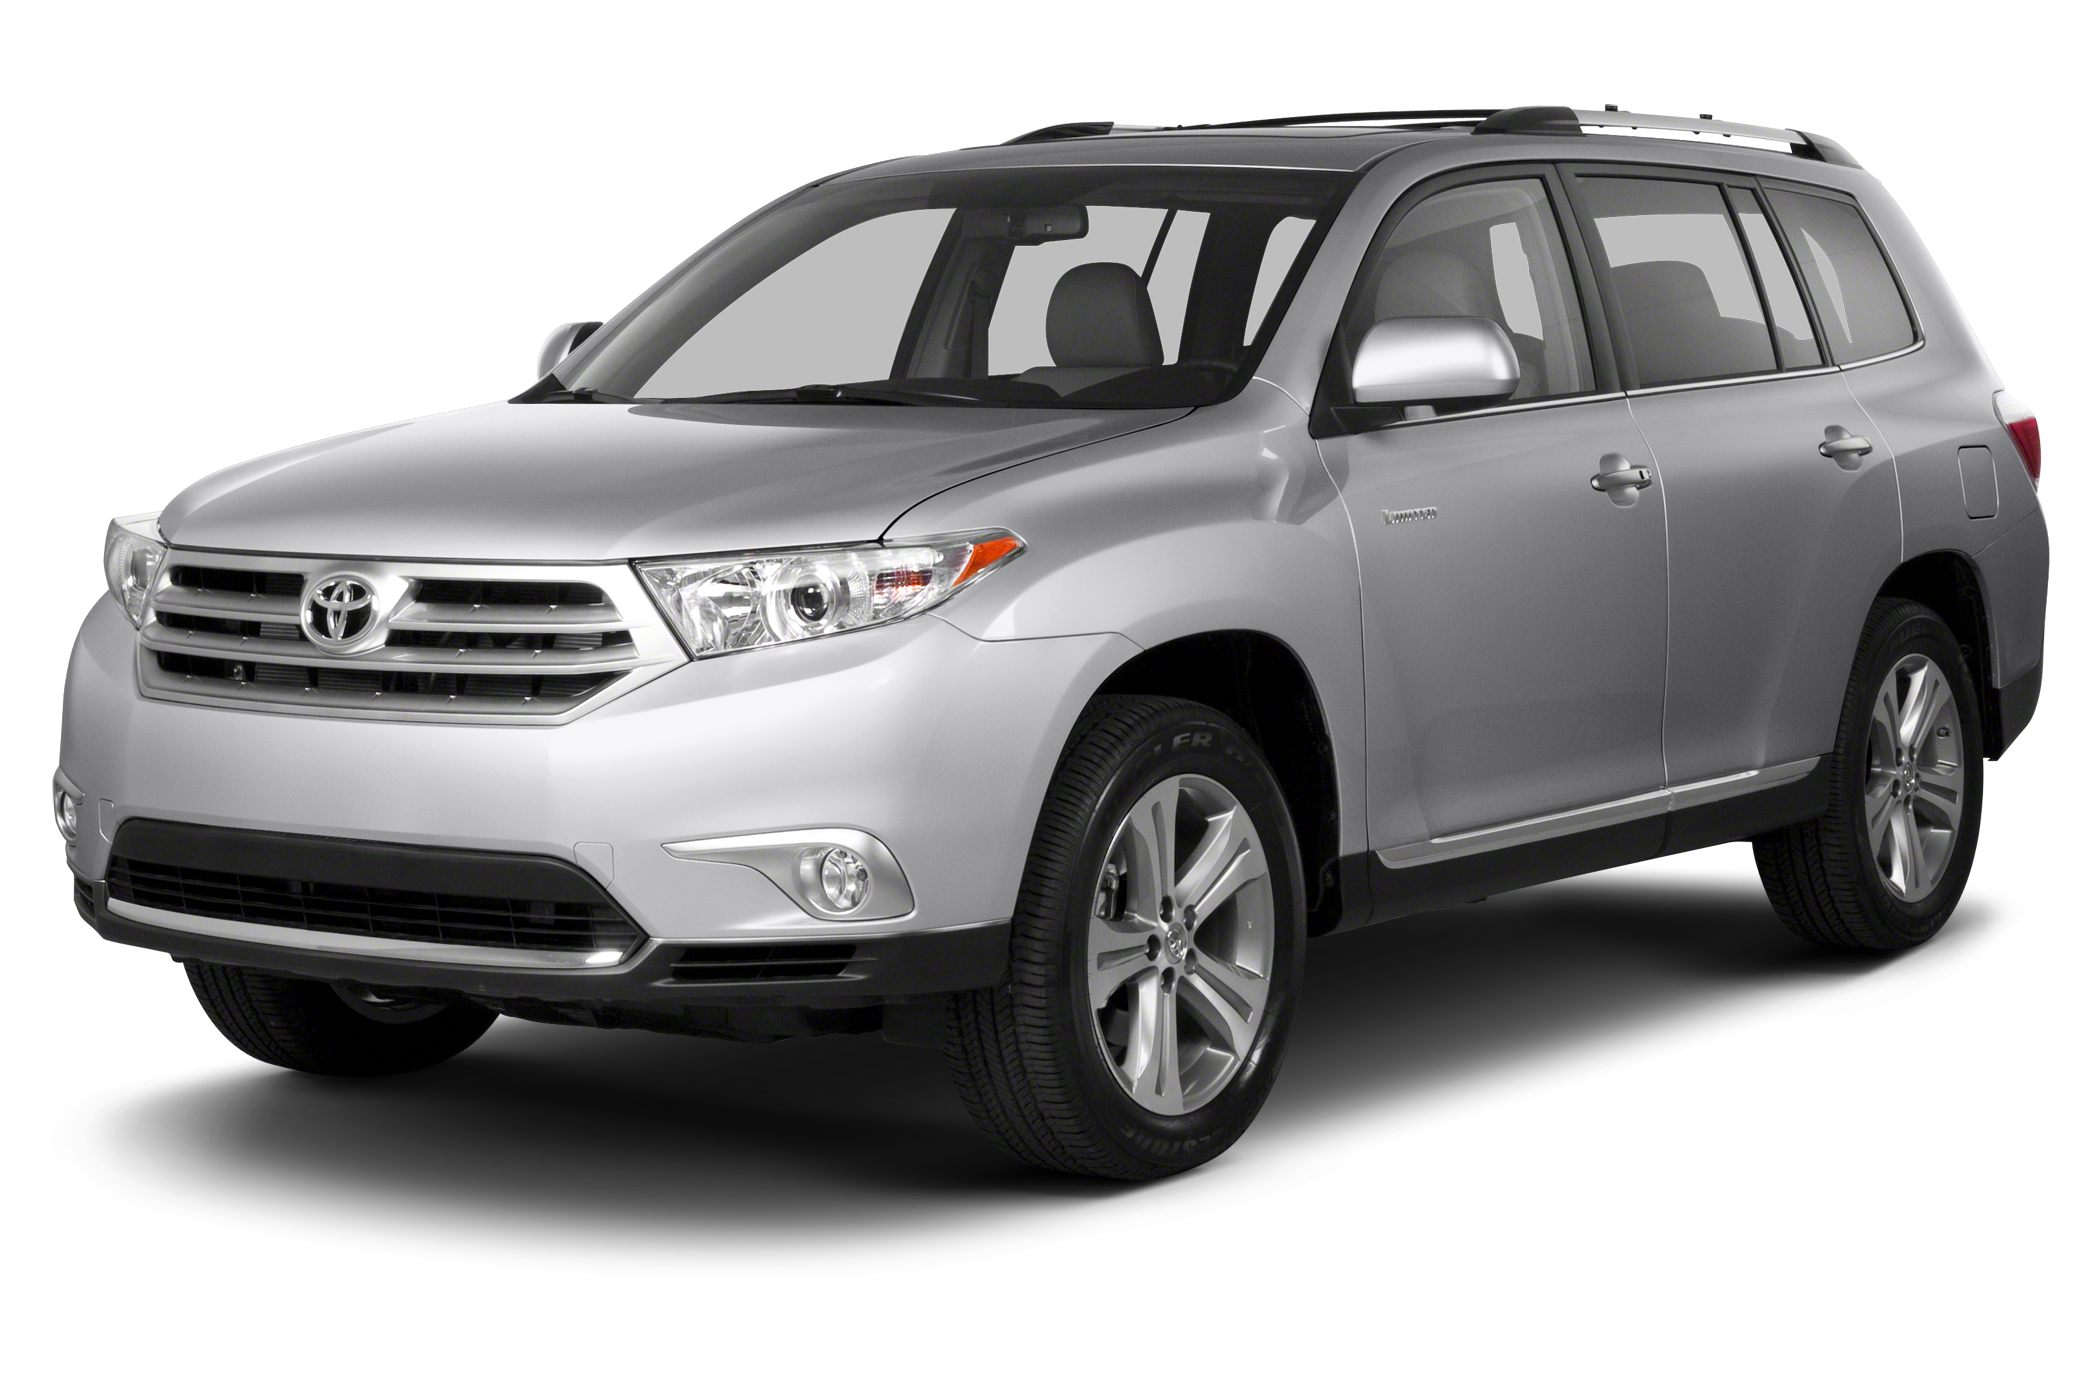 2013 Toyota Highlander Limited 1700 below Kelley Blue Book Toyota Certified GREAT MILES 32450